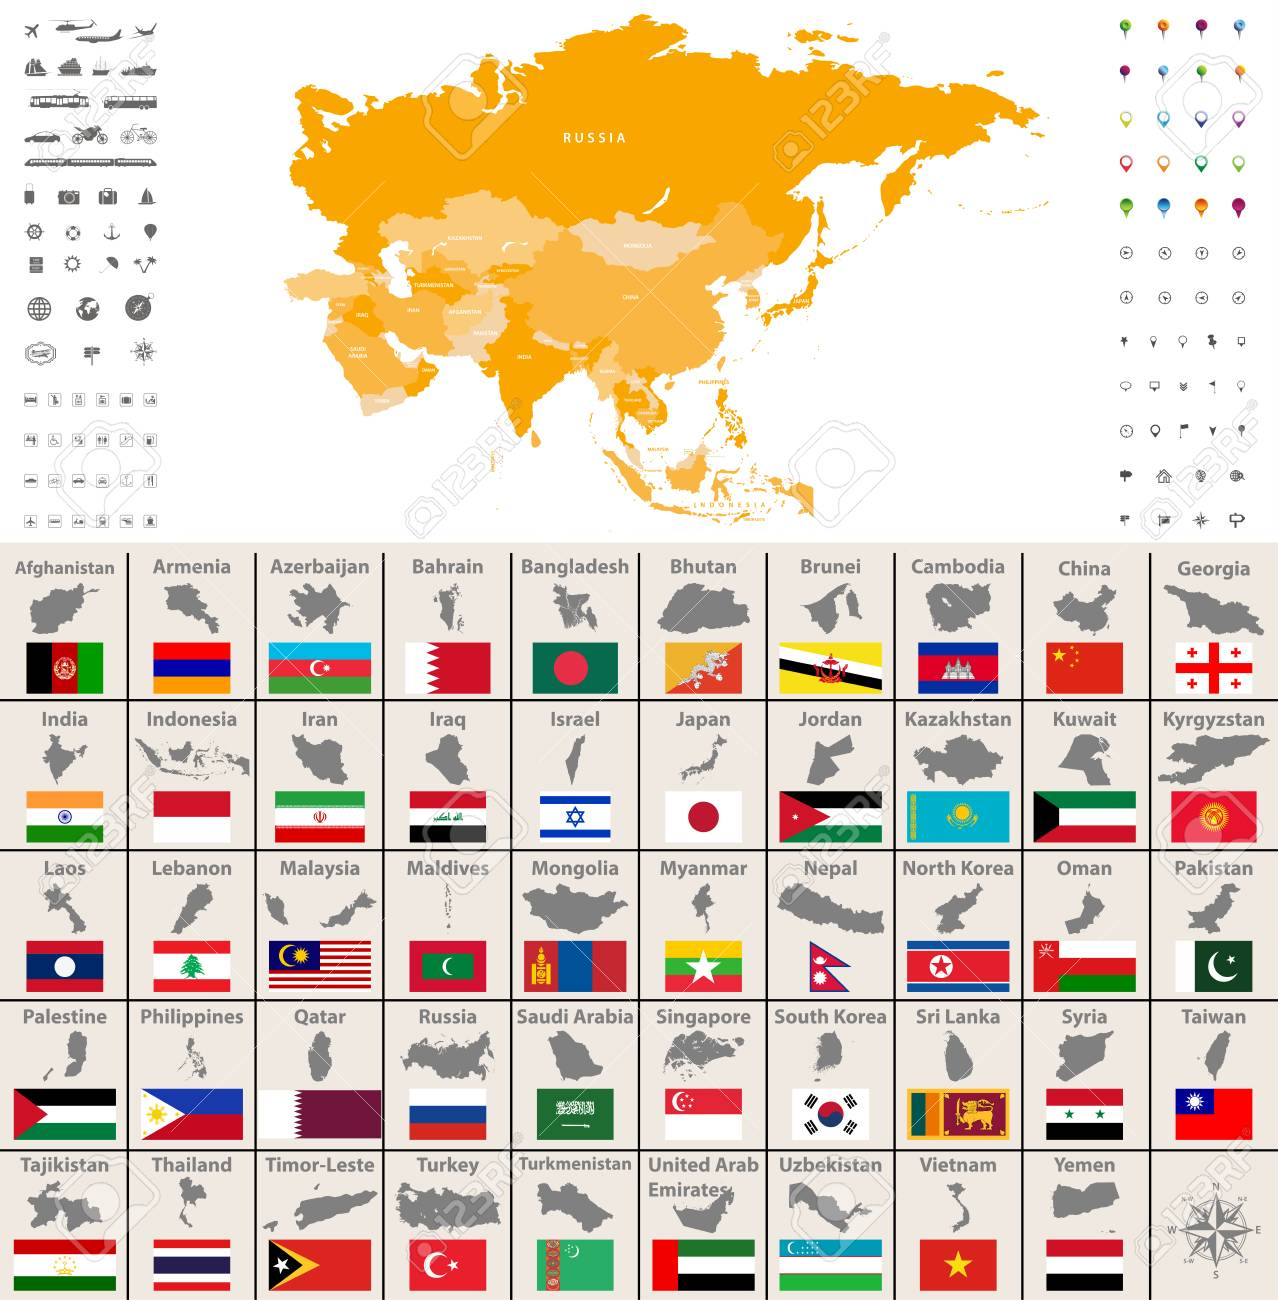 Asia political map, location, navigation and travel icons. Asian..